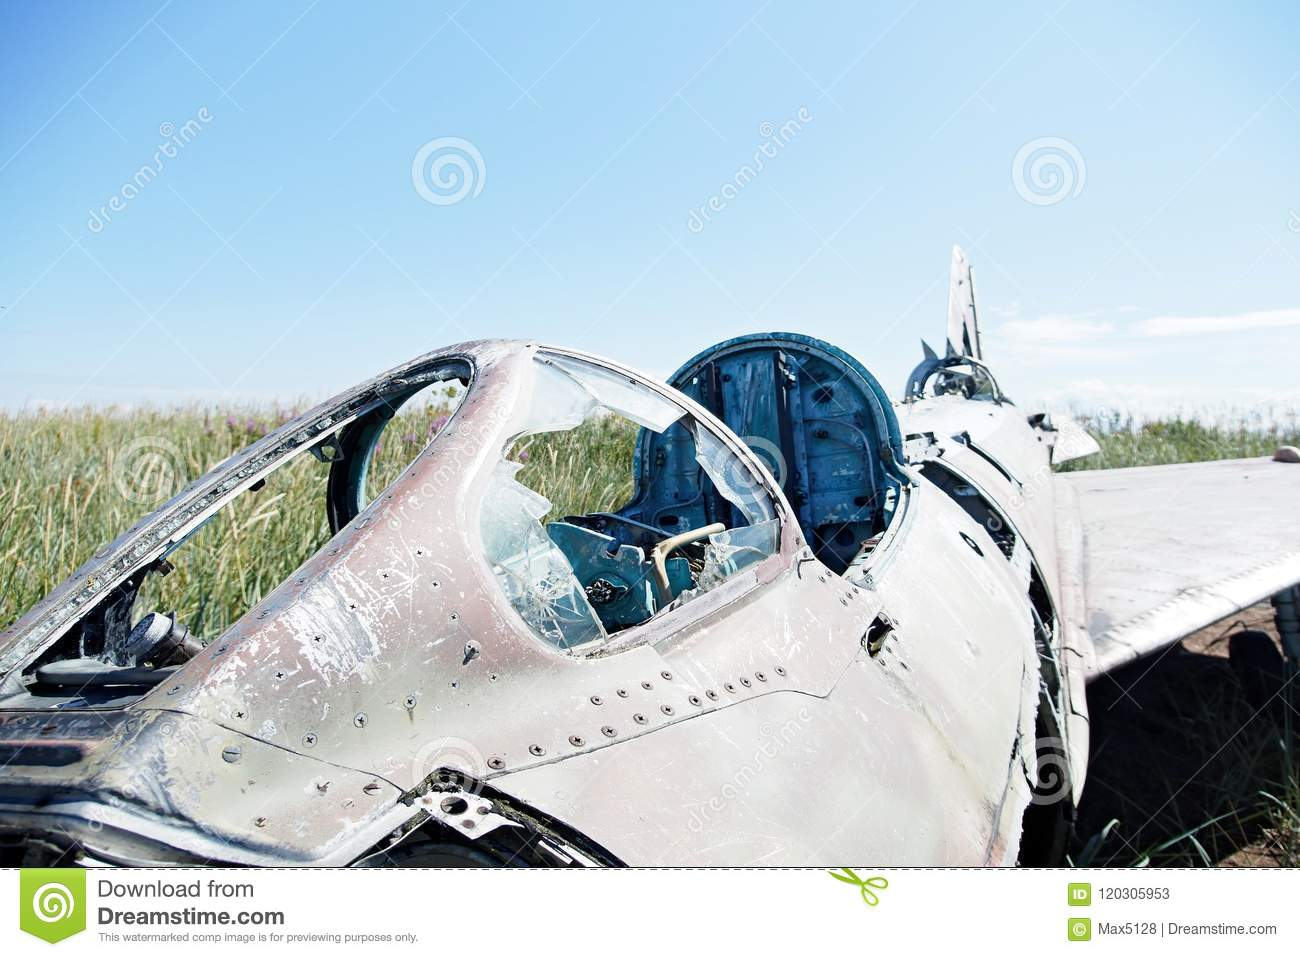 Parts Of Crashed Aircraft On A Natural Background Vegetation An